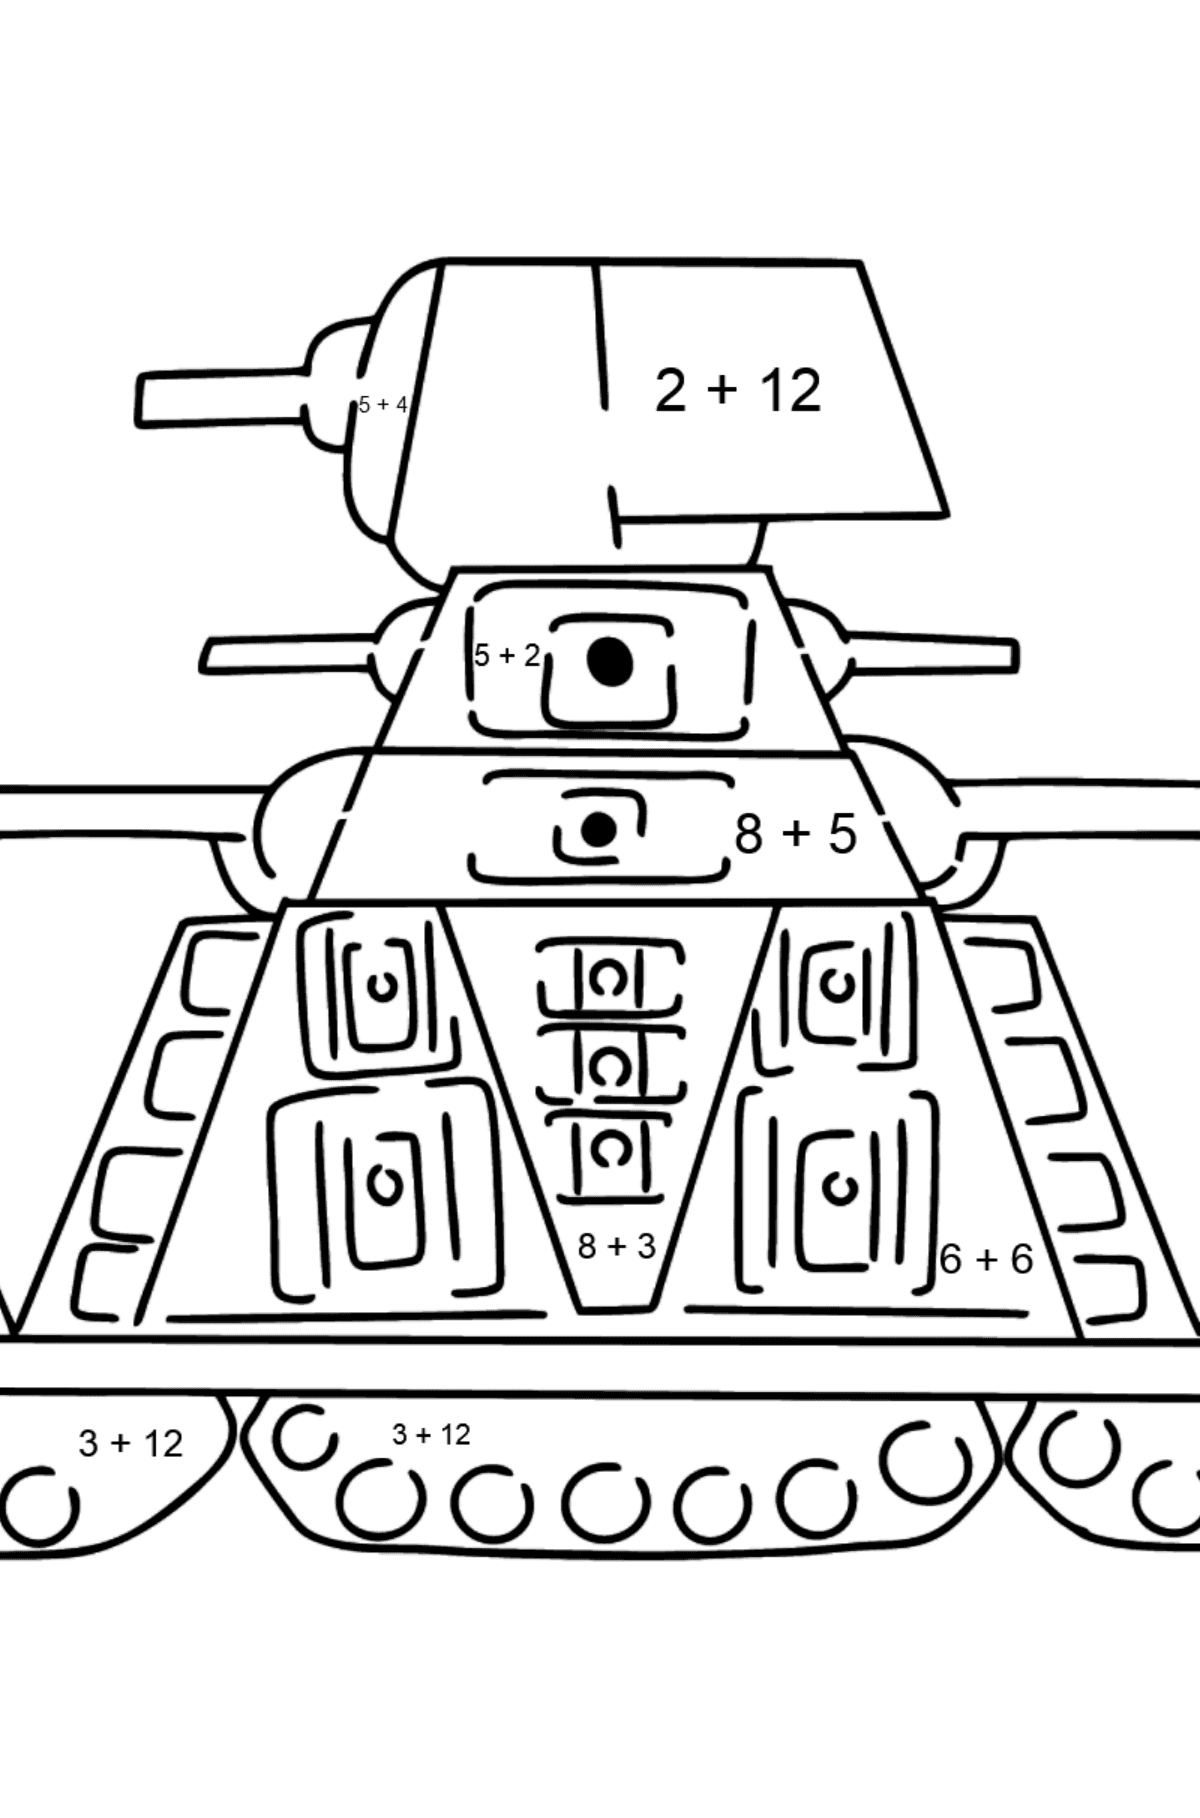 Tank KV 44 coloring page - Math Coloring - Addition for Kids